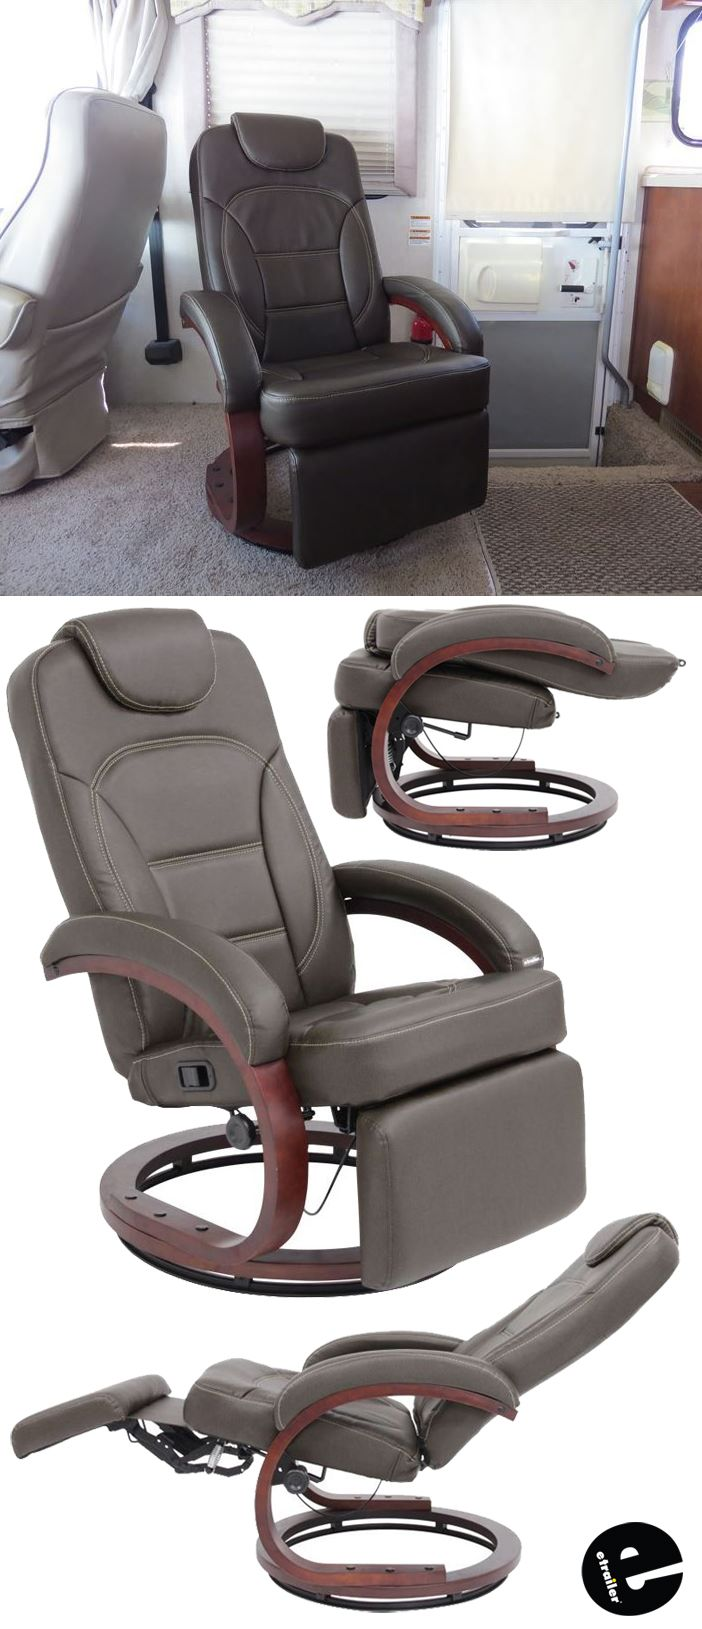 Euro Recliner Chair Stand Ikea Thomas Payne Rv W Footrest 20 Seat Width Chairs Recline Rotate 365 Degrees And Have A Sleek Design That Gives Your S Interior Modern Look I Like The Material Is